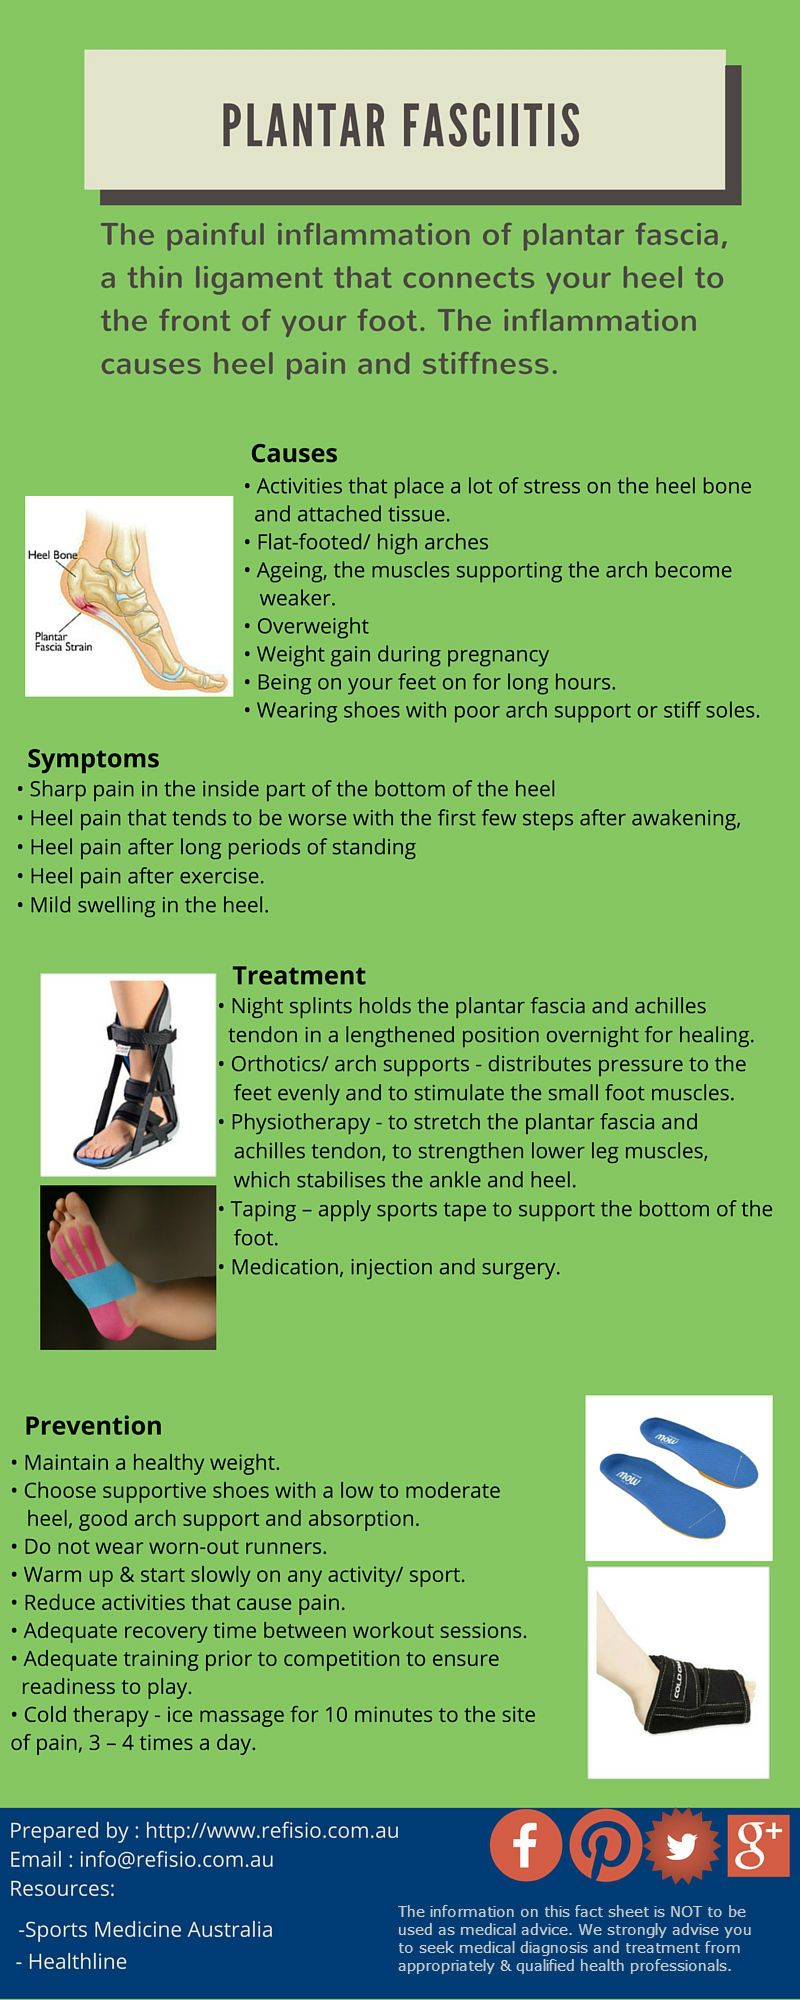 Badly Sprained Ankle Recovery Time Plantar Fasciitis Cause